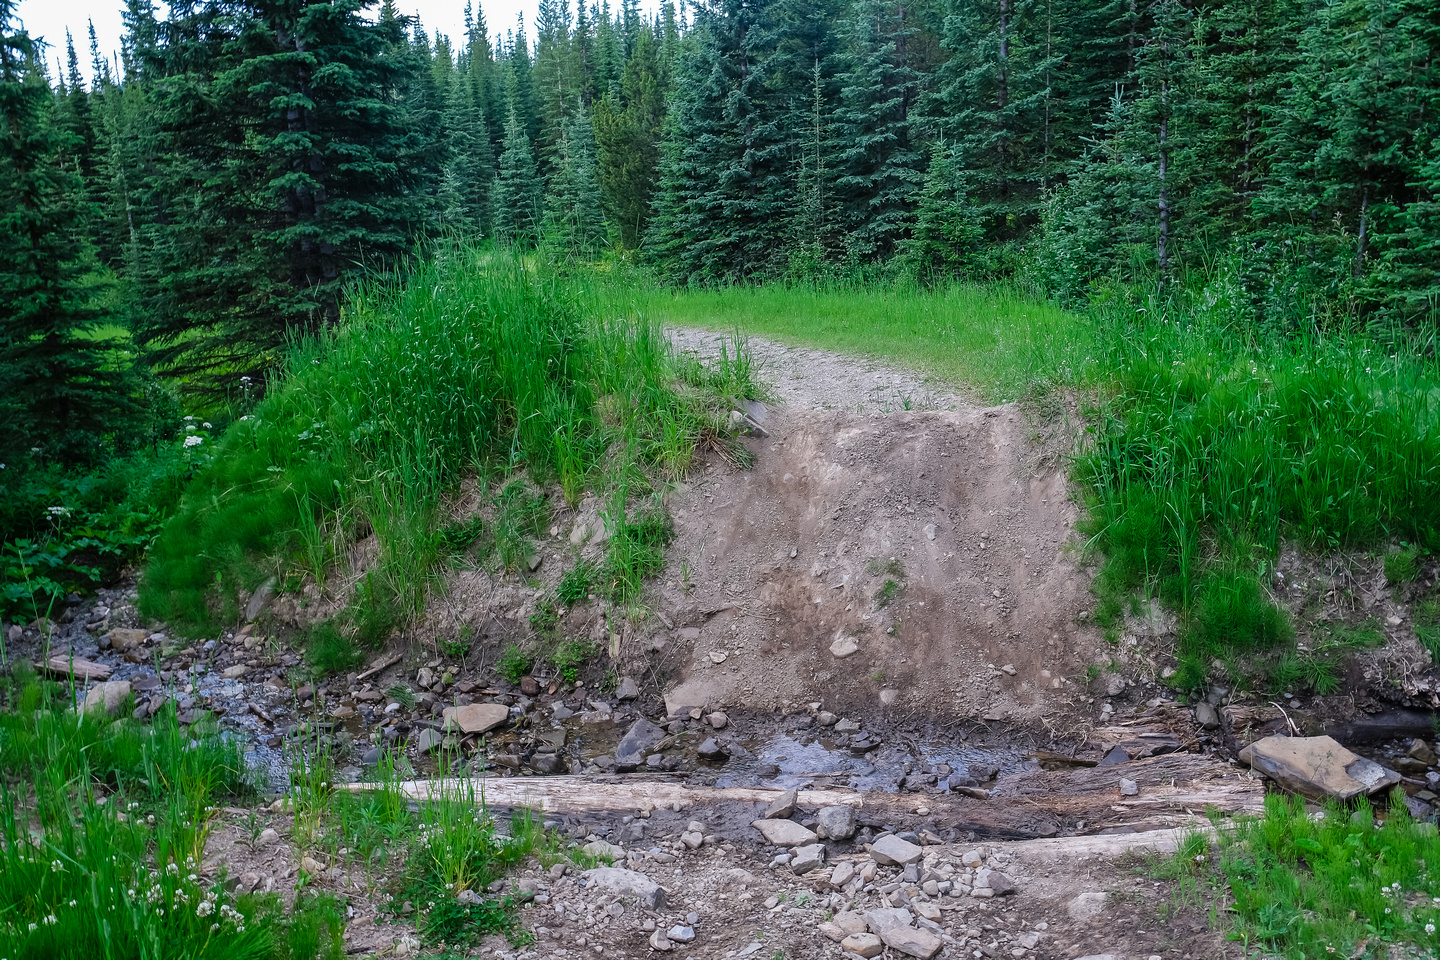 Deep berms cut through the approach roads - over 50 of them!